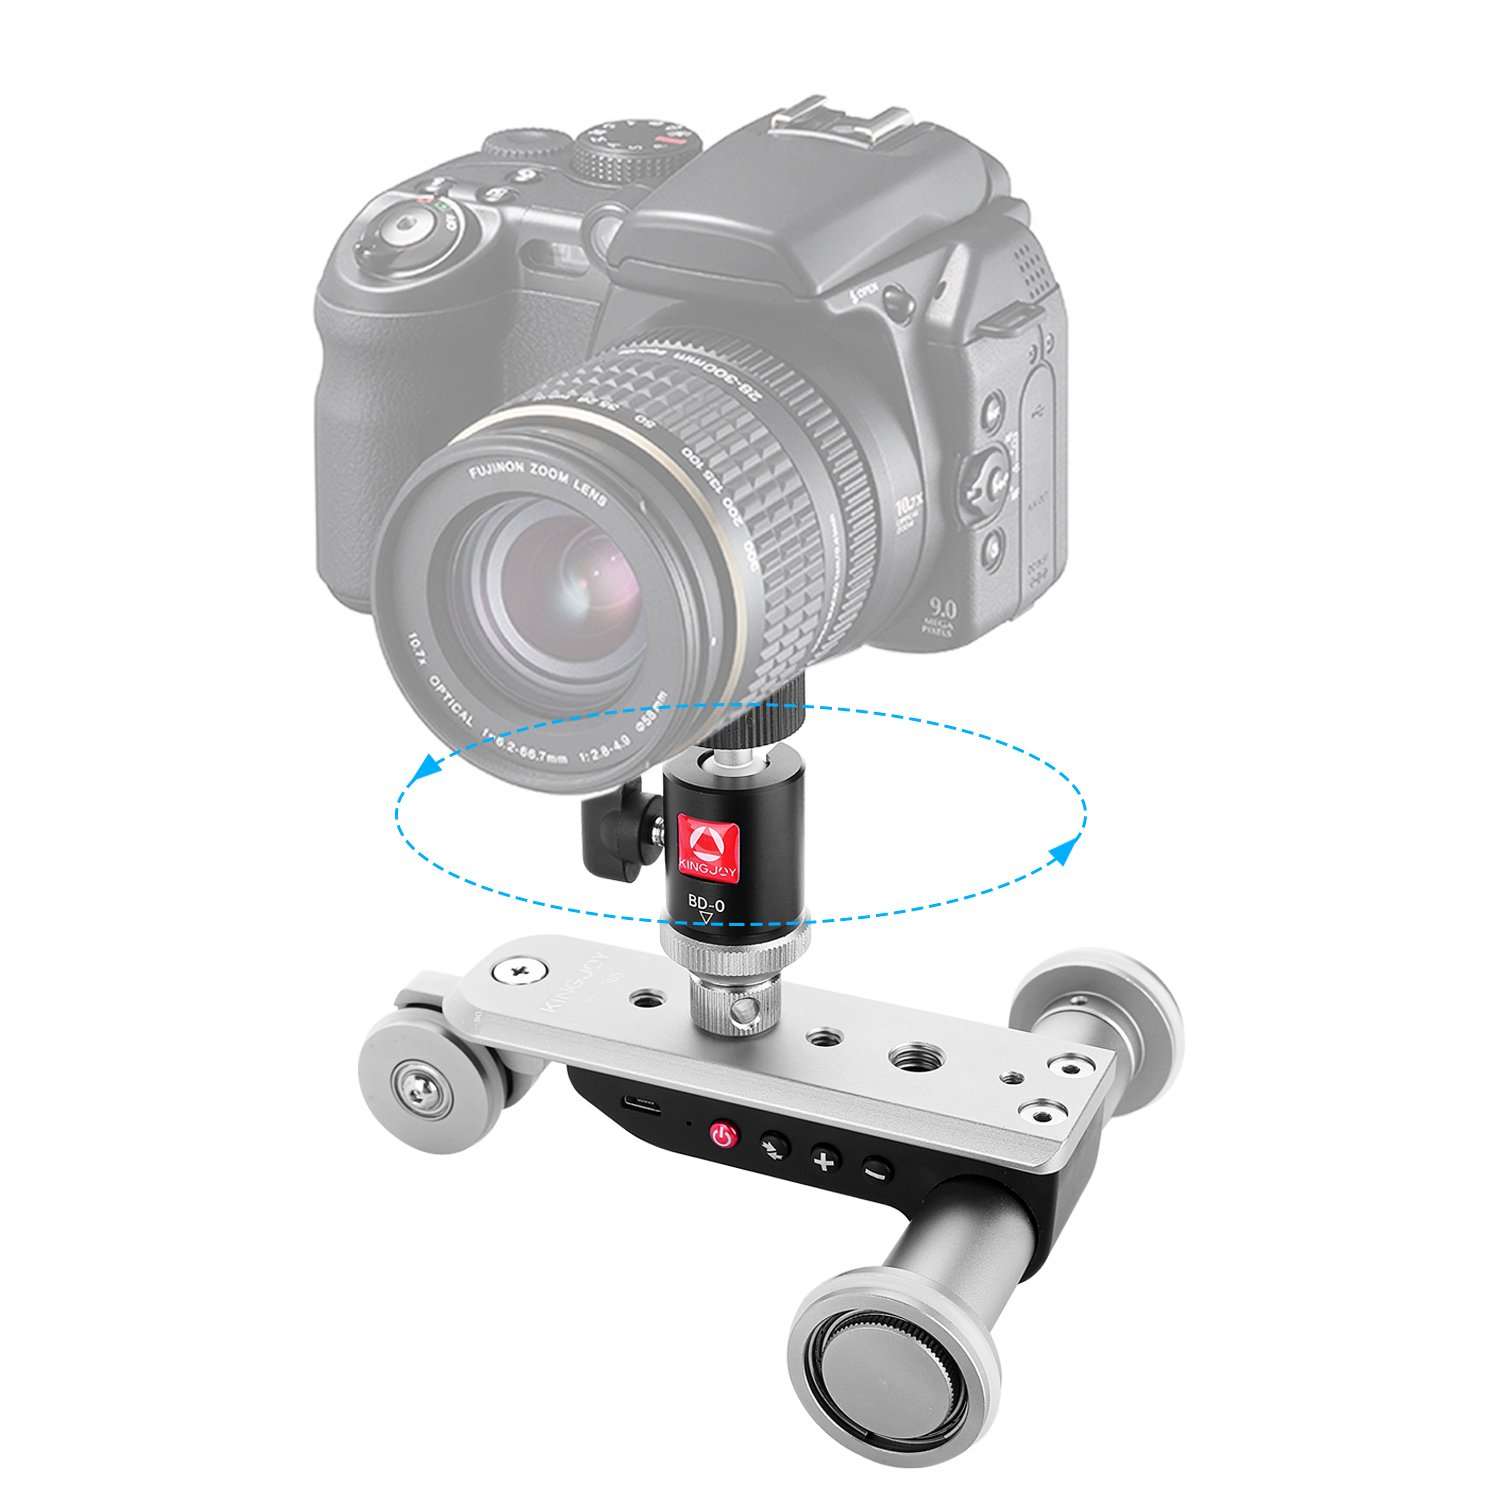 Kamisafe Mini Motorized Slider Track Dolly, PPL-06S Mobile Tabletop Slider Car Skater Pulley Rolling 3-Wheel Video Track Rail with Swivel Ball Head Compatible with DSLR Camera Camcorder iPhone Phones